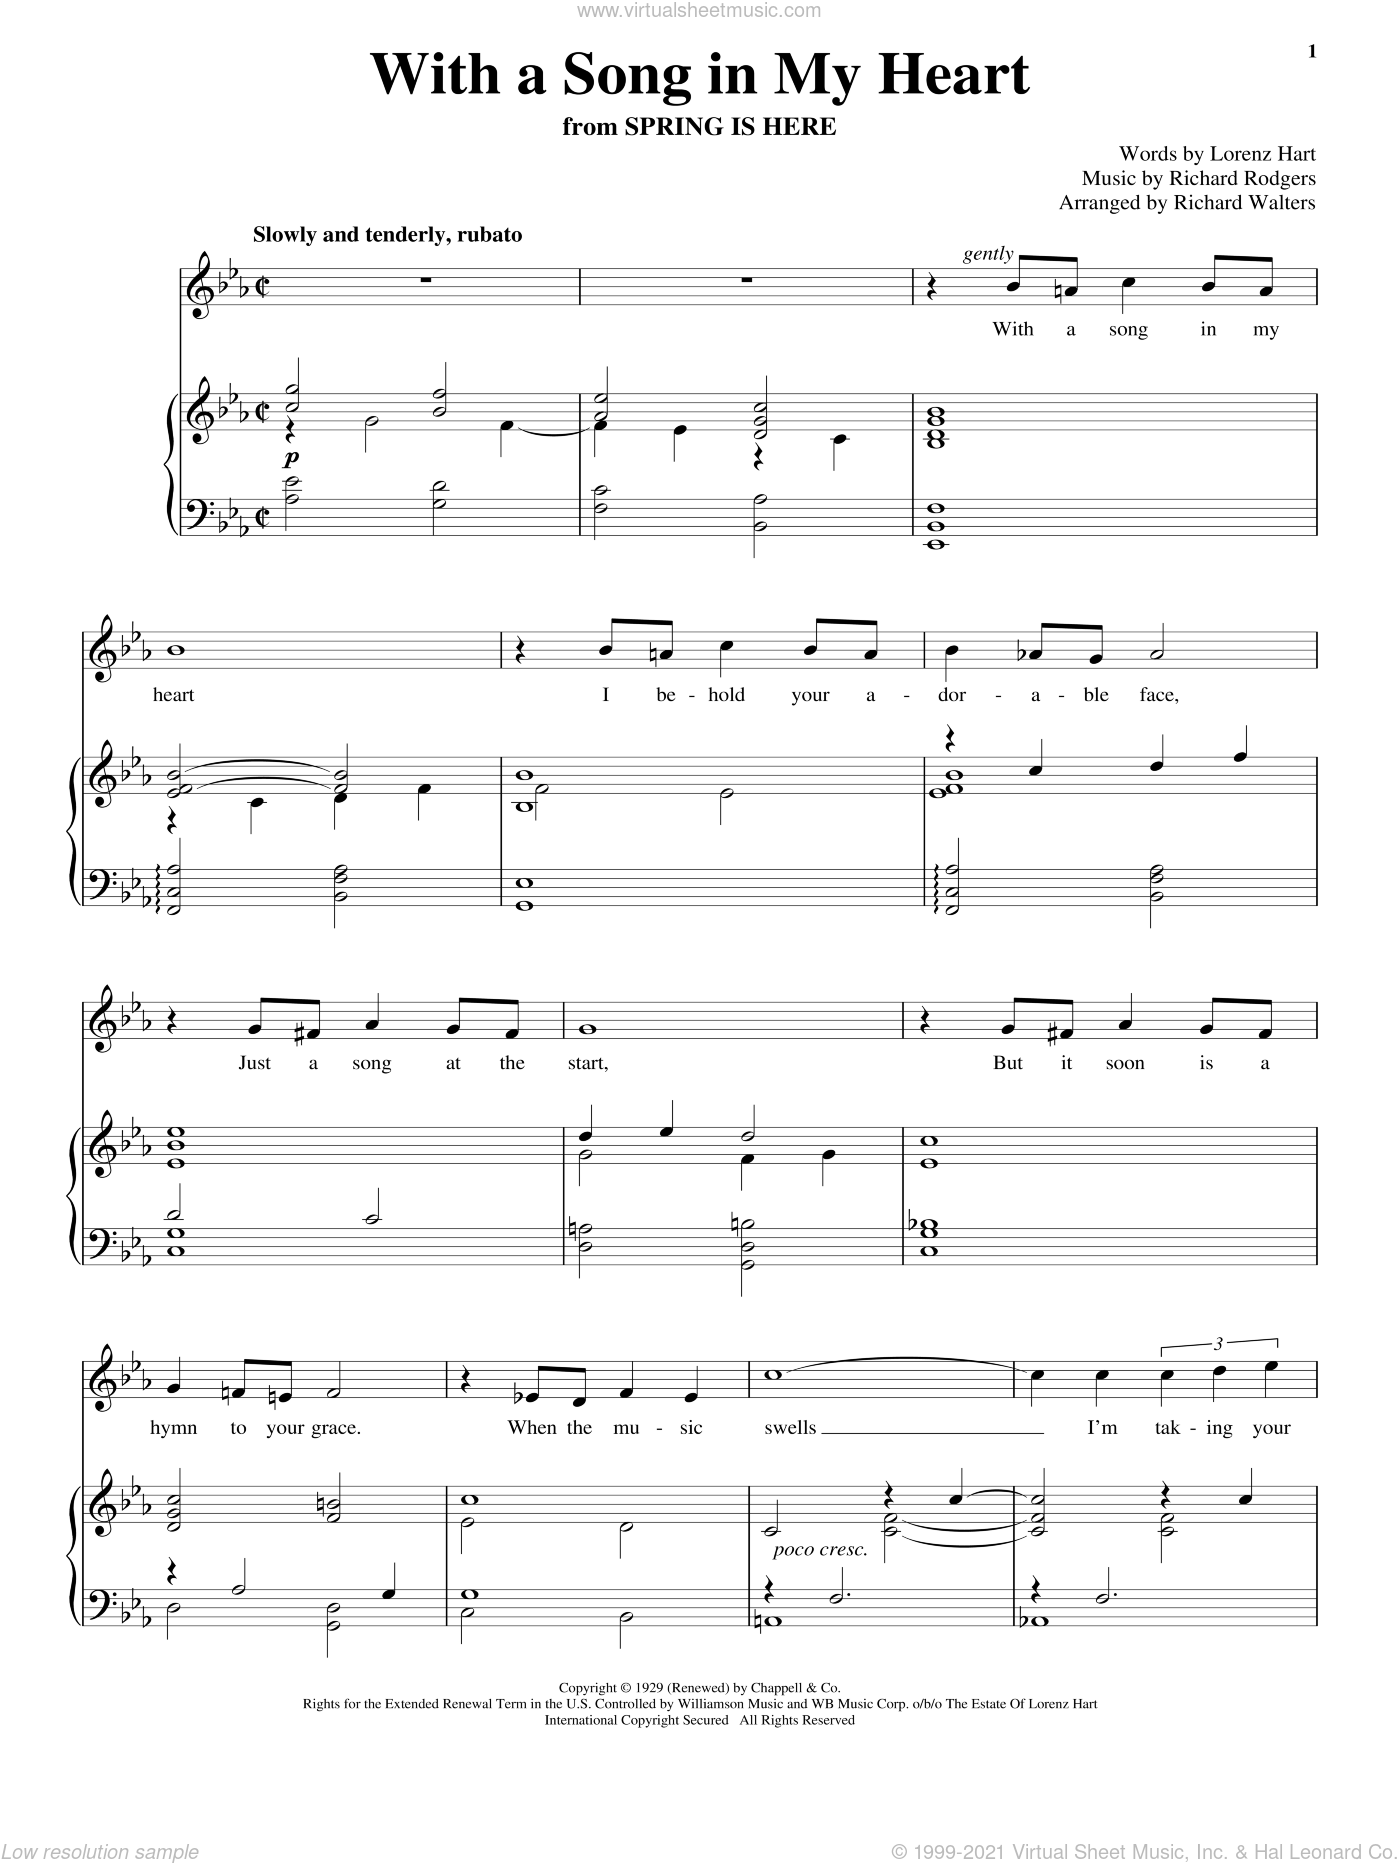 With A Song In My Heart sheet music for voice and piano by Rodgers & Hart, Lorenz Hart and Richard Rodgers, intermediate skill level